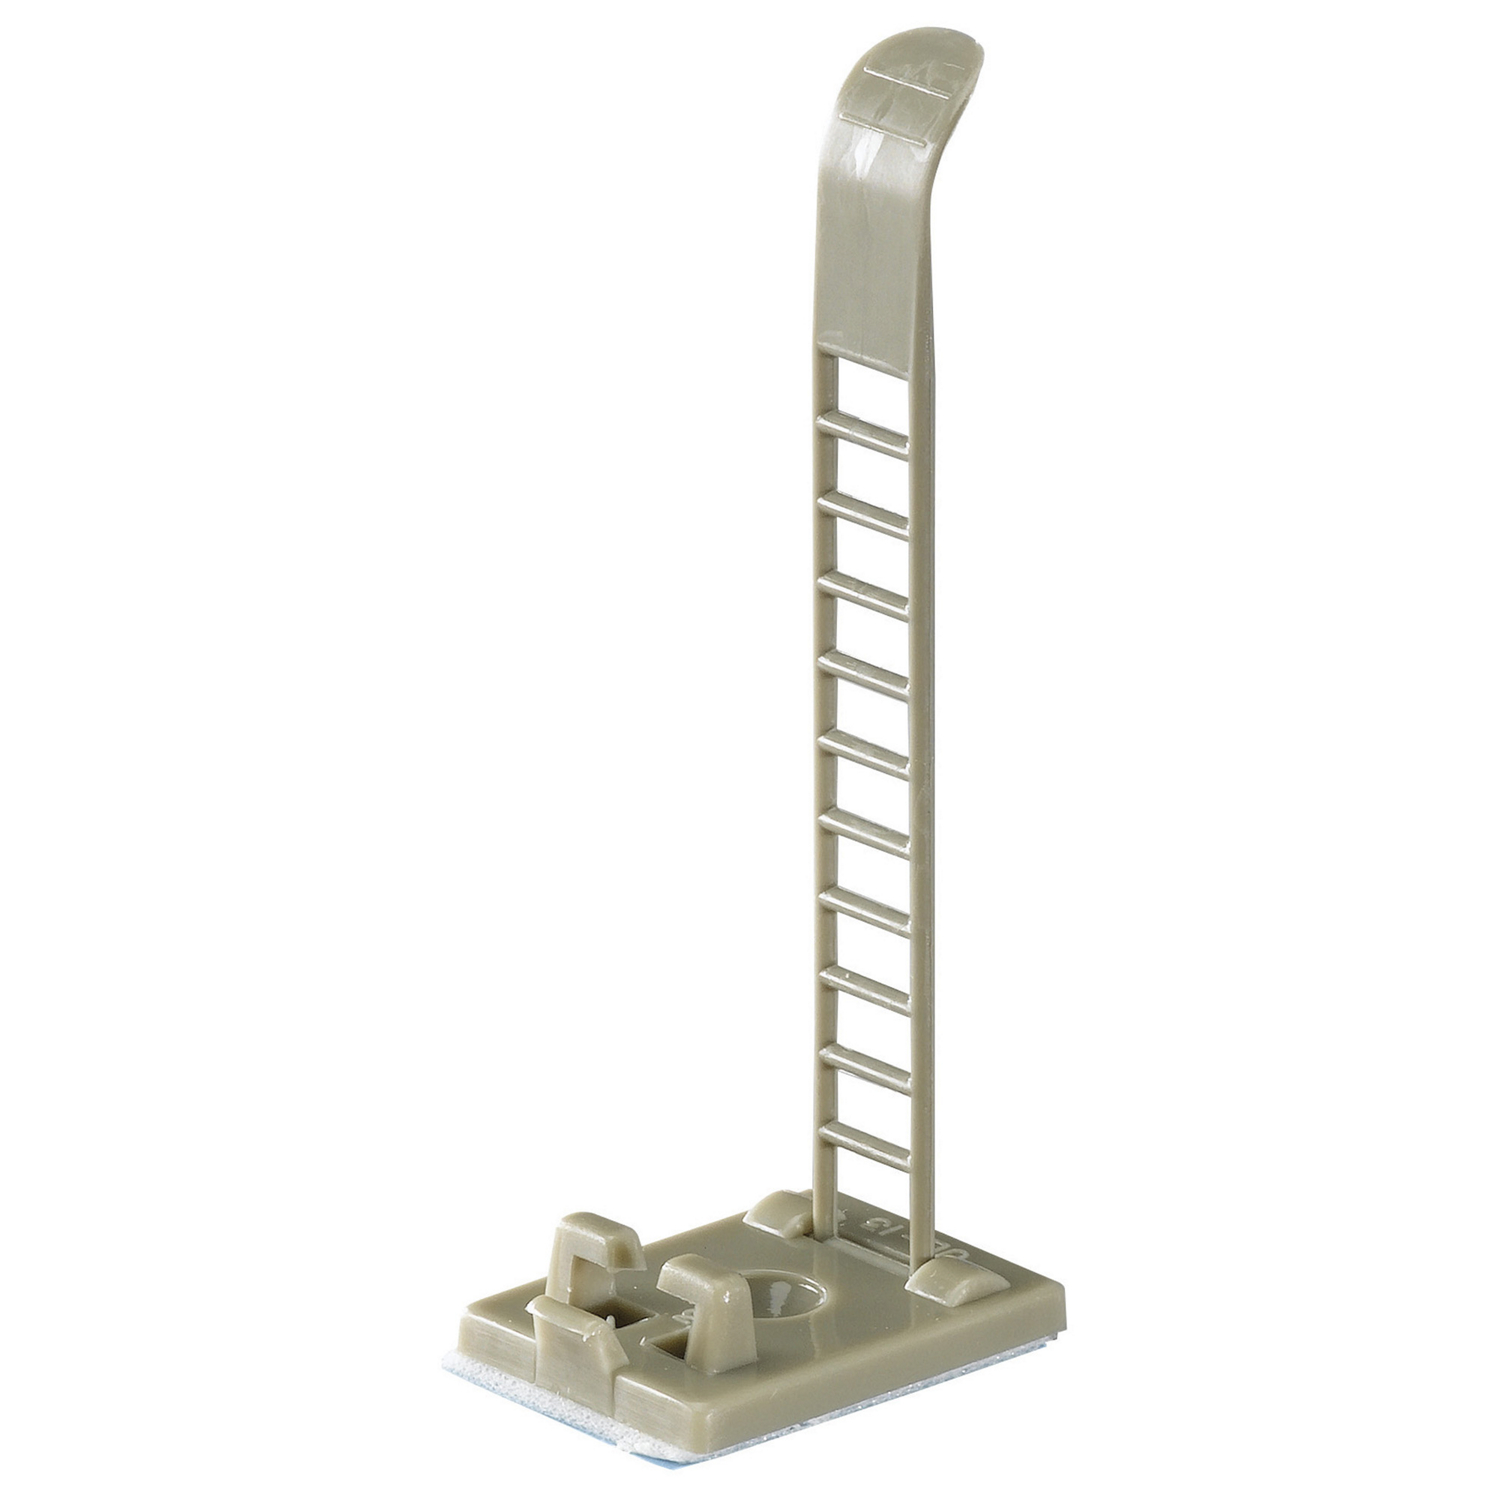 "Thomas & Betts ULNY-013-8-C Adjustable Ladder-Style Cable Clamp, Gray Nylon, 2.34"" Length"